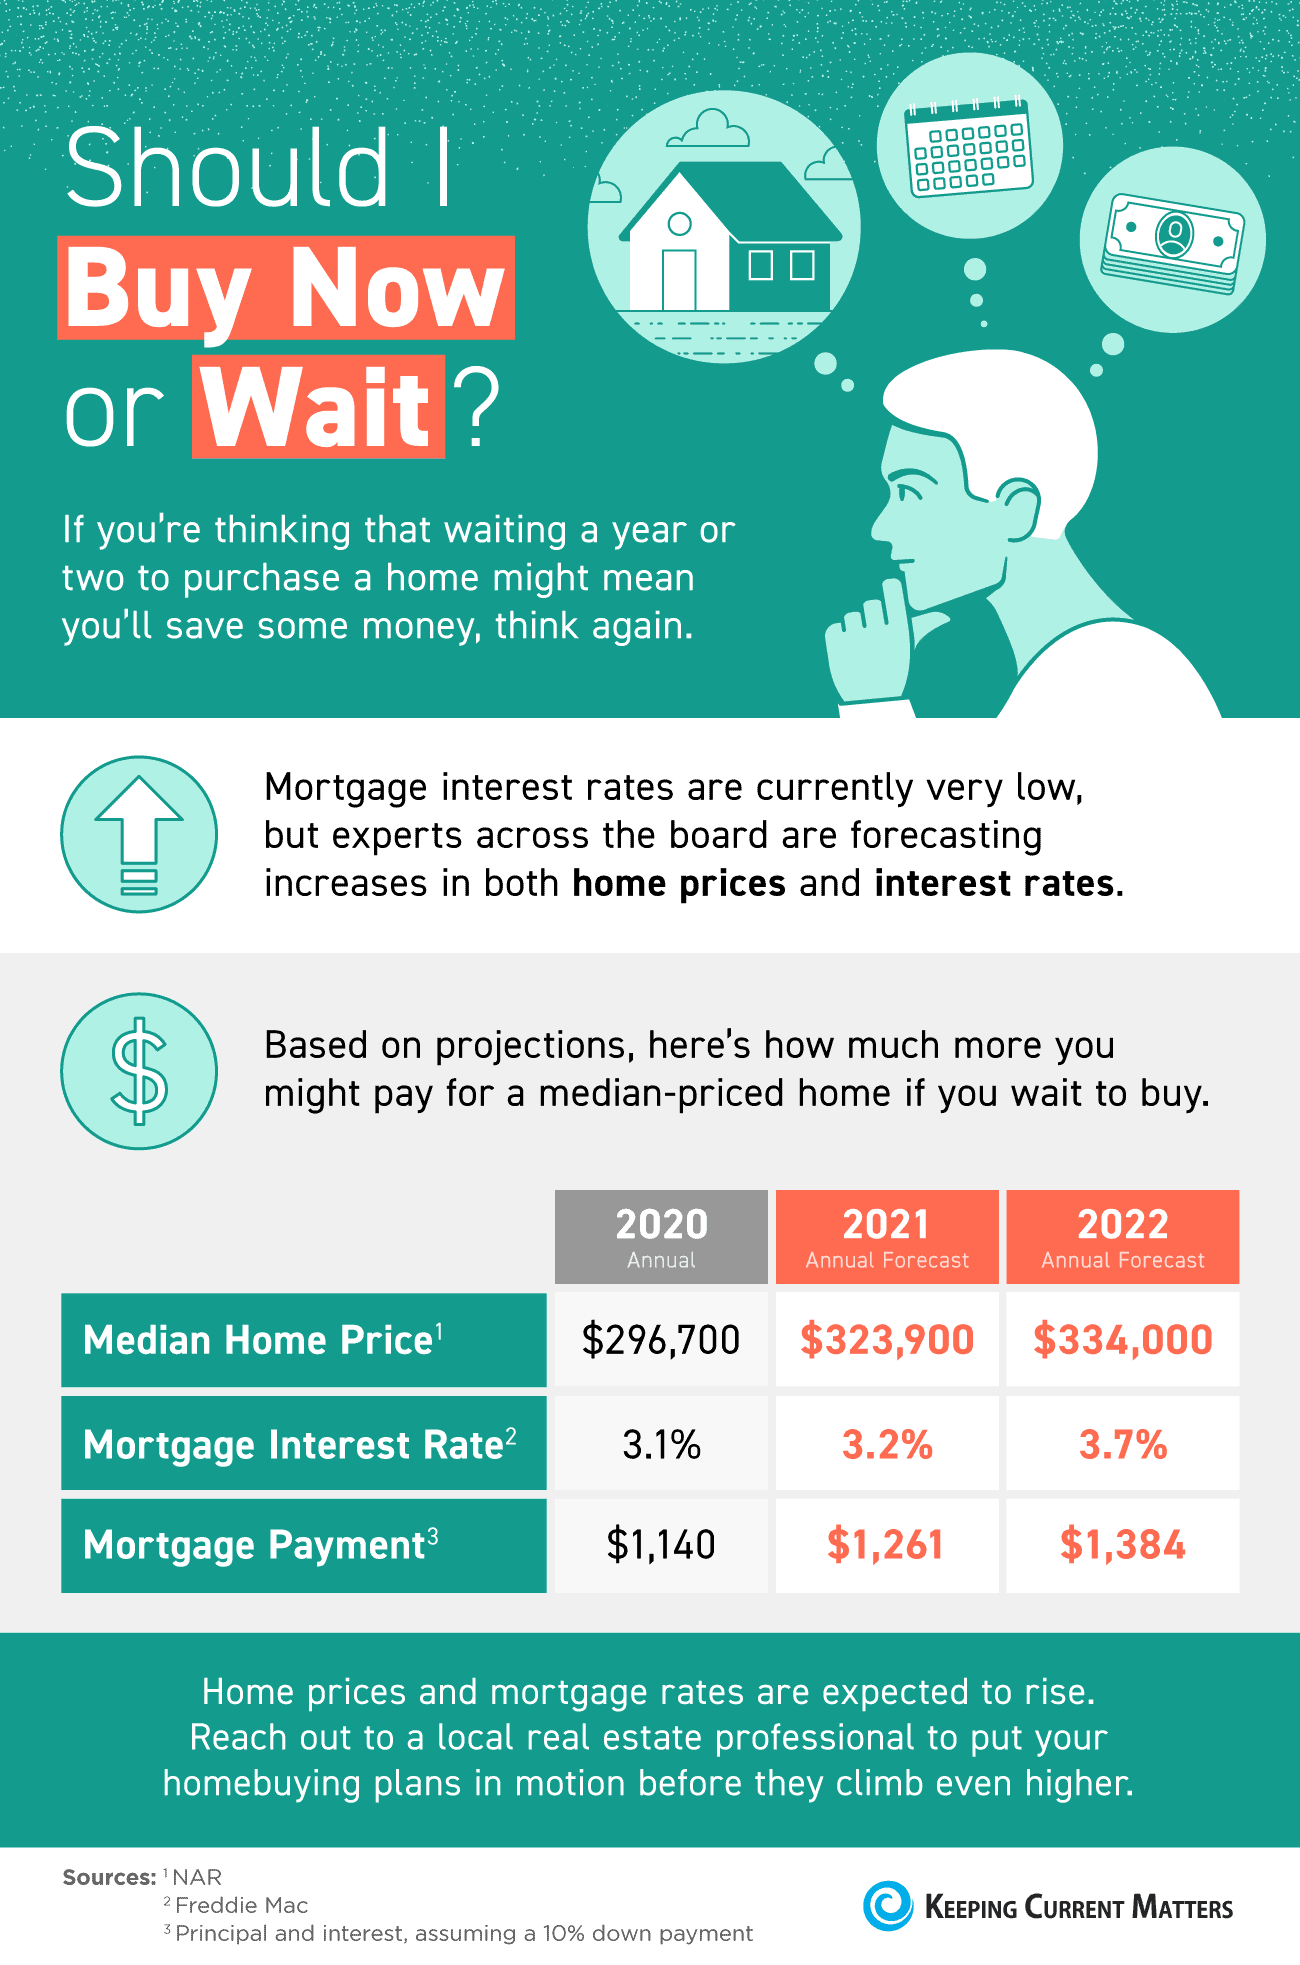 Should I Buy Now or Wait? [INFOGRAPHIC] | Keeping Current Matters